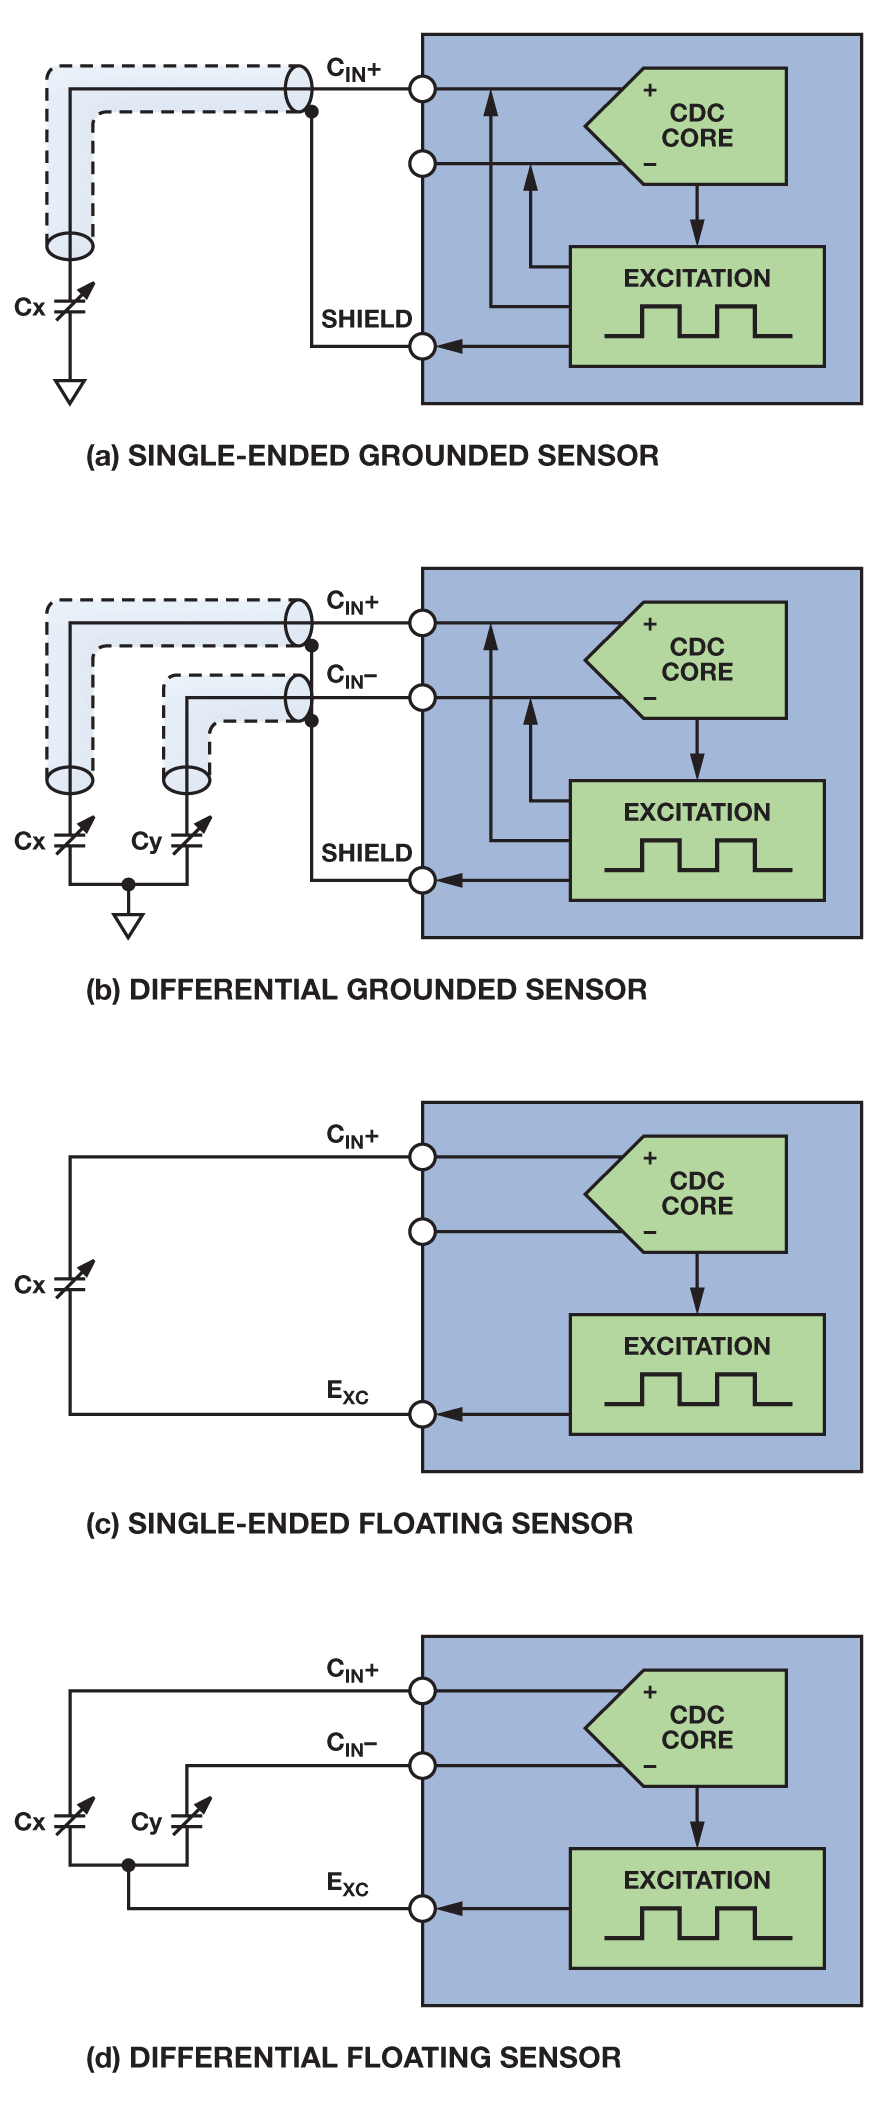 configurations for single ended differential grounded and floating sensor applications  [ 880 x 2106 Pixel ]